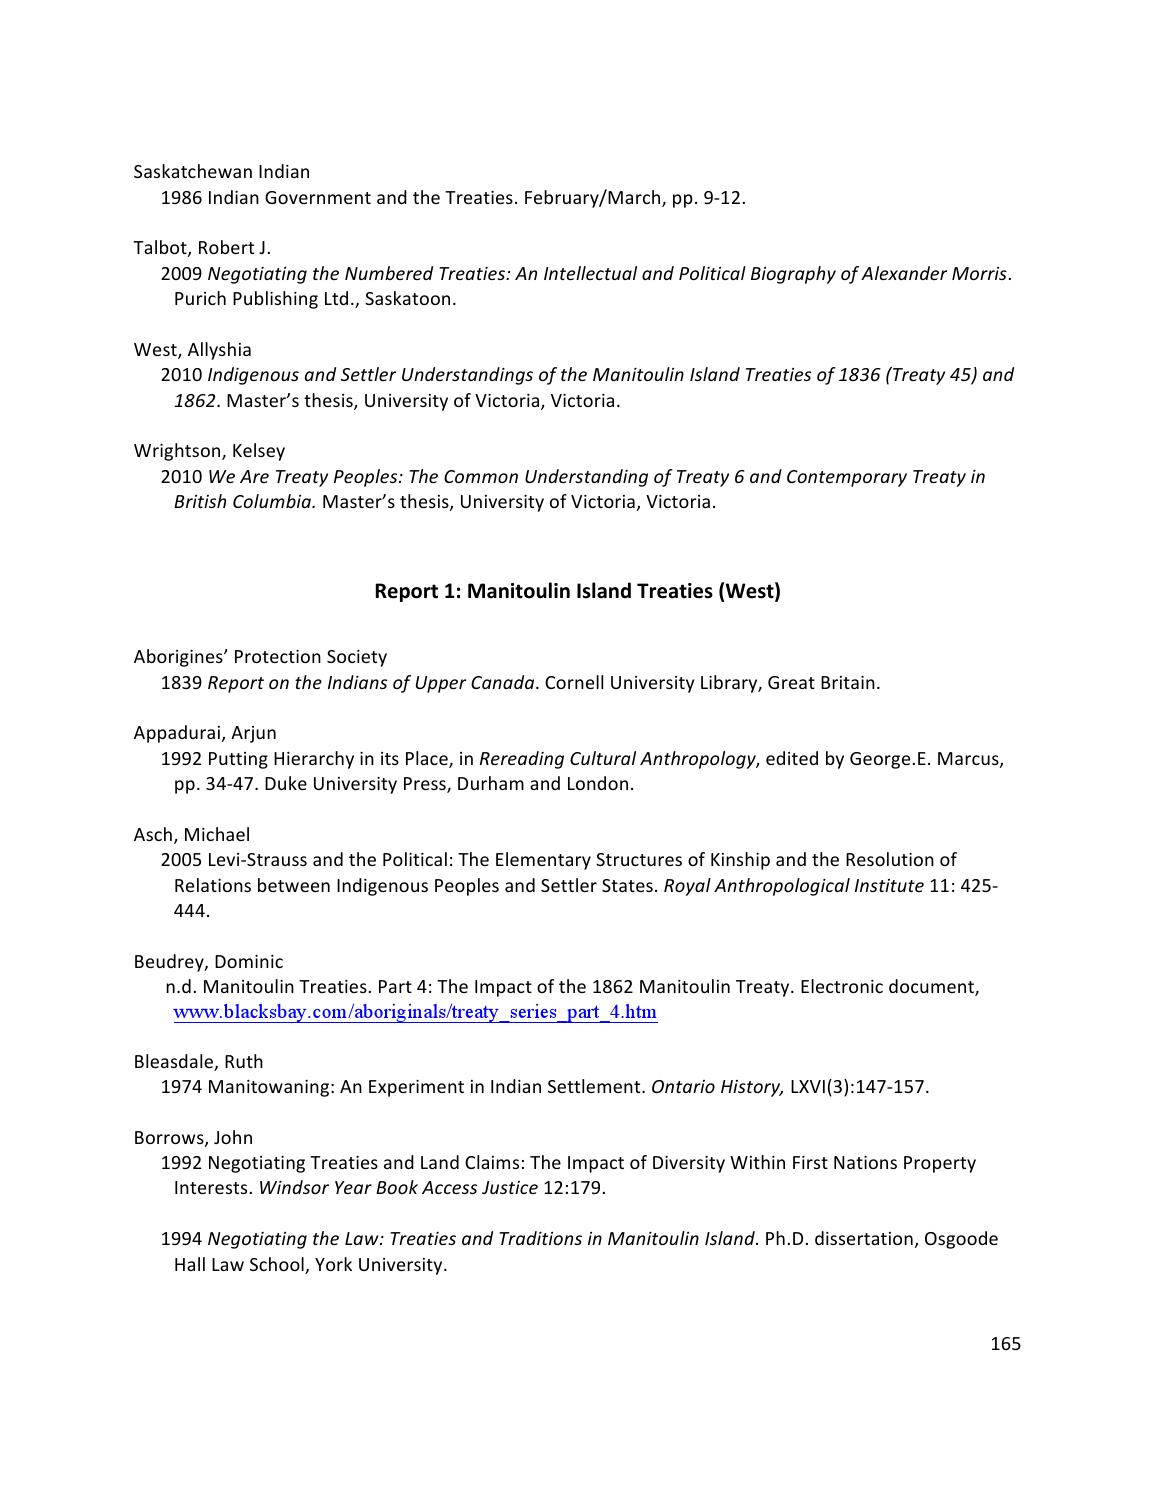 PROJECT REPORT: Treaty Relations as a Method of Resolving IP